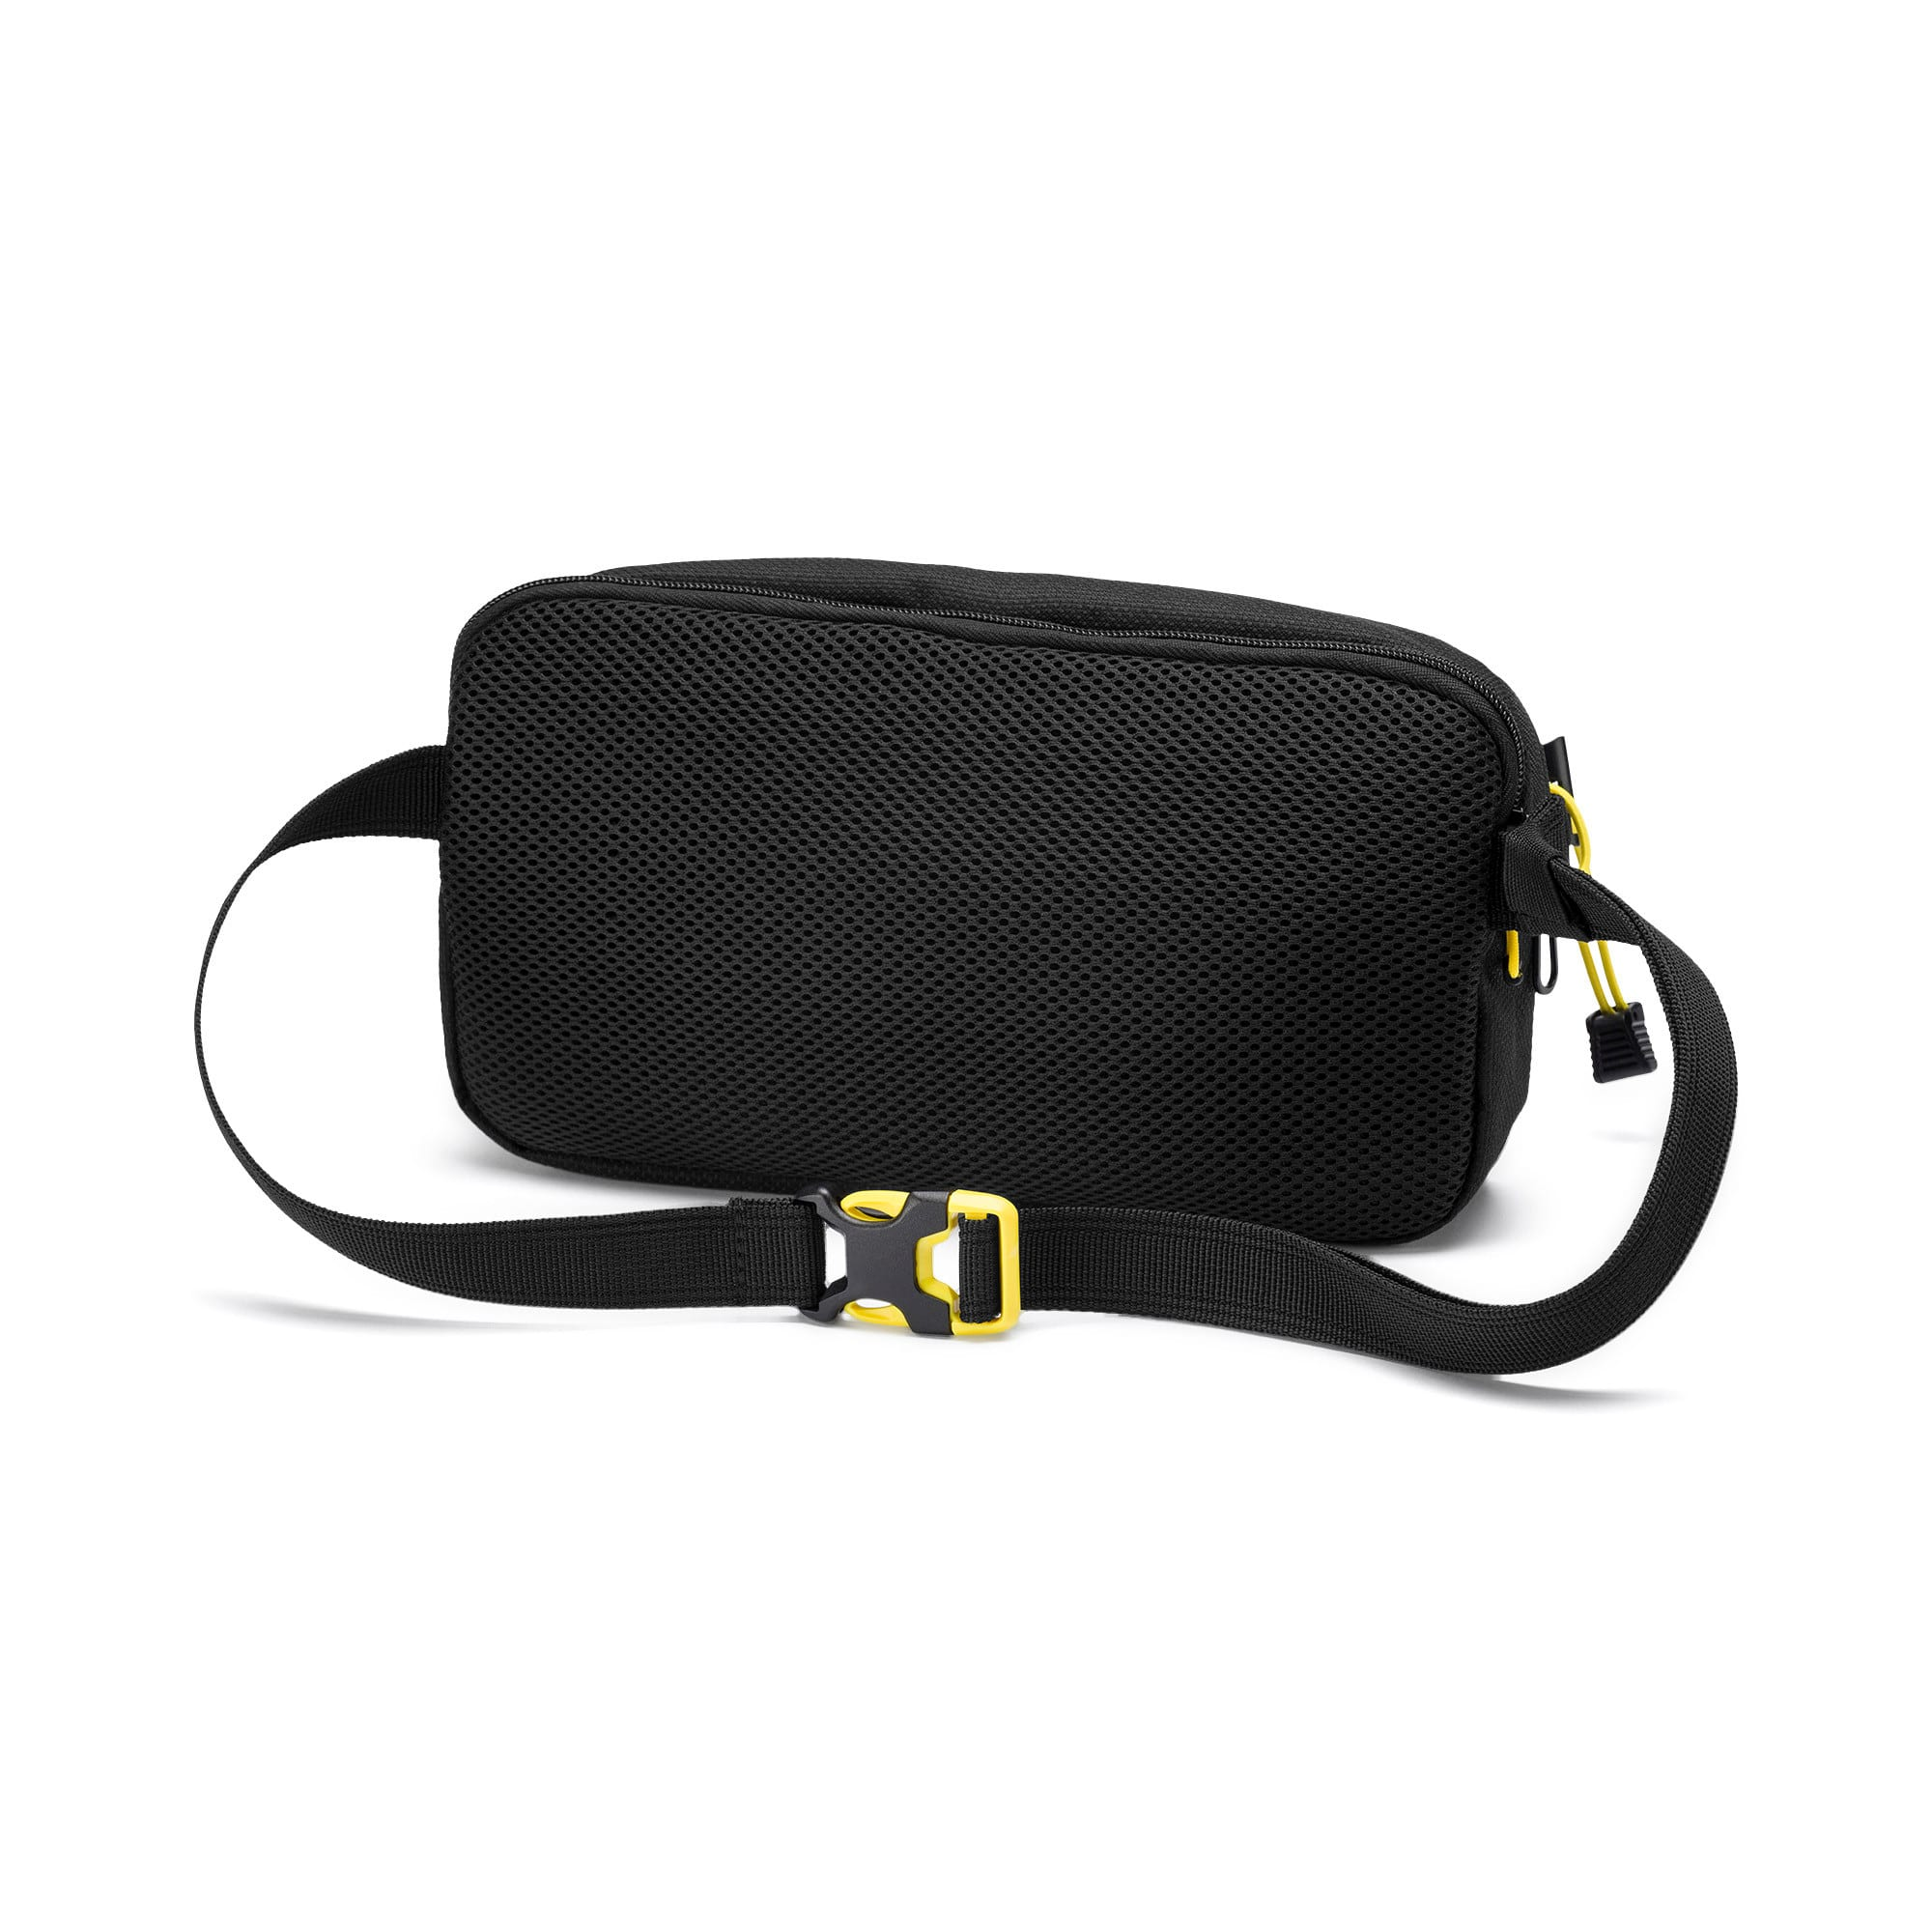 Thumbnail 2 of Ferrari Fanwear Waist Bag, Puma Black, medium